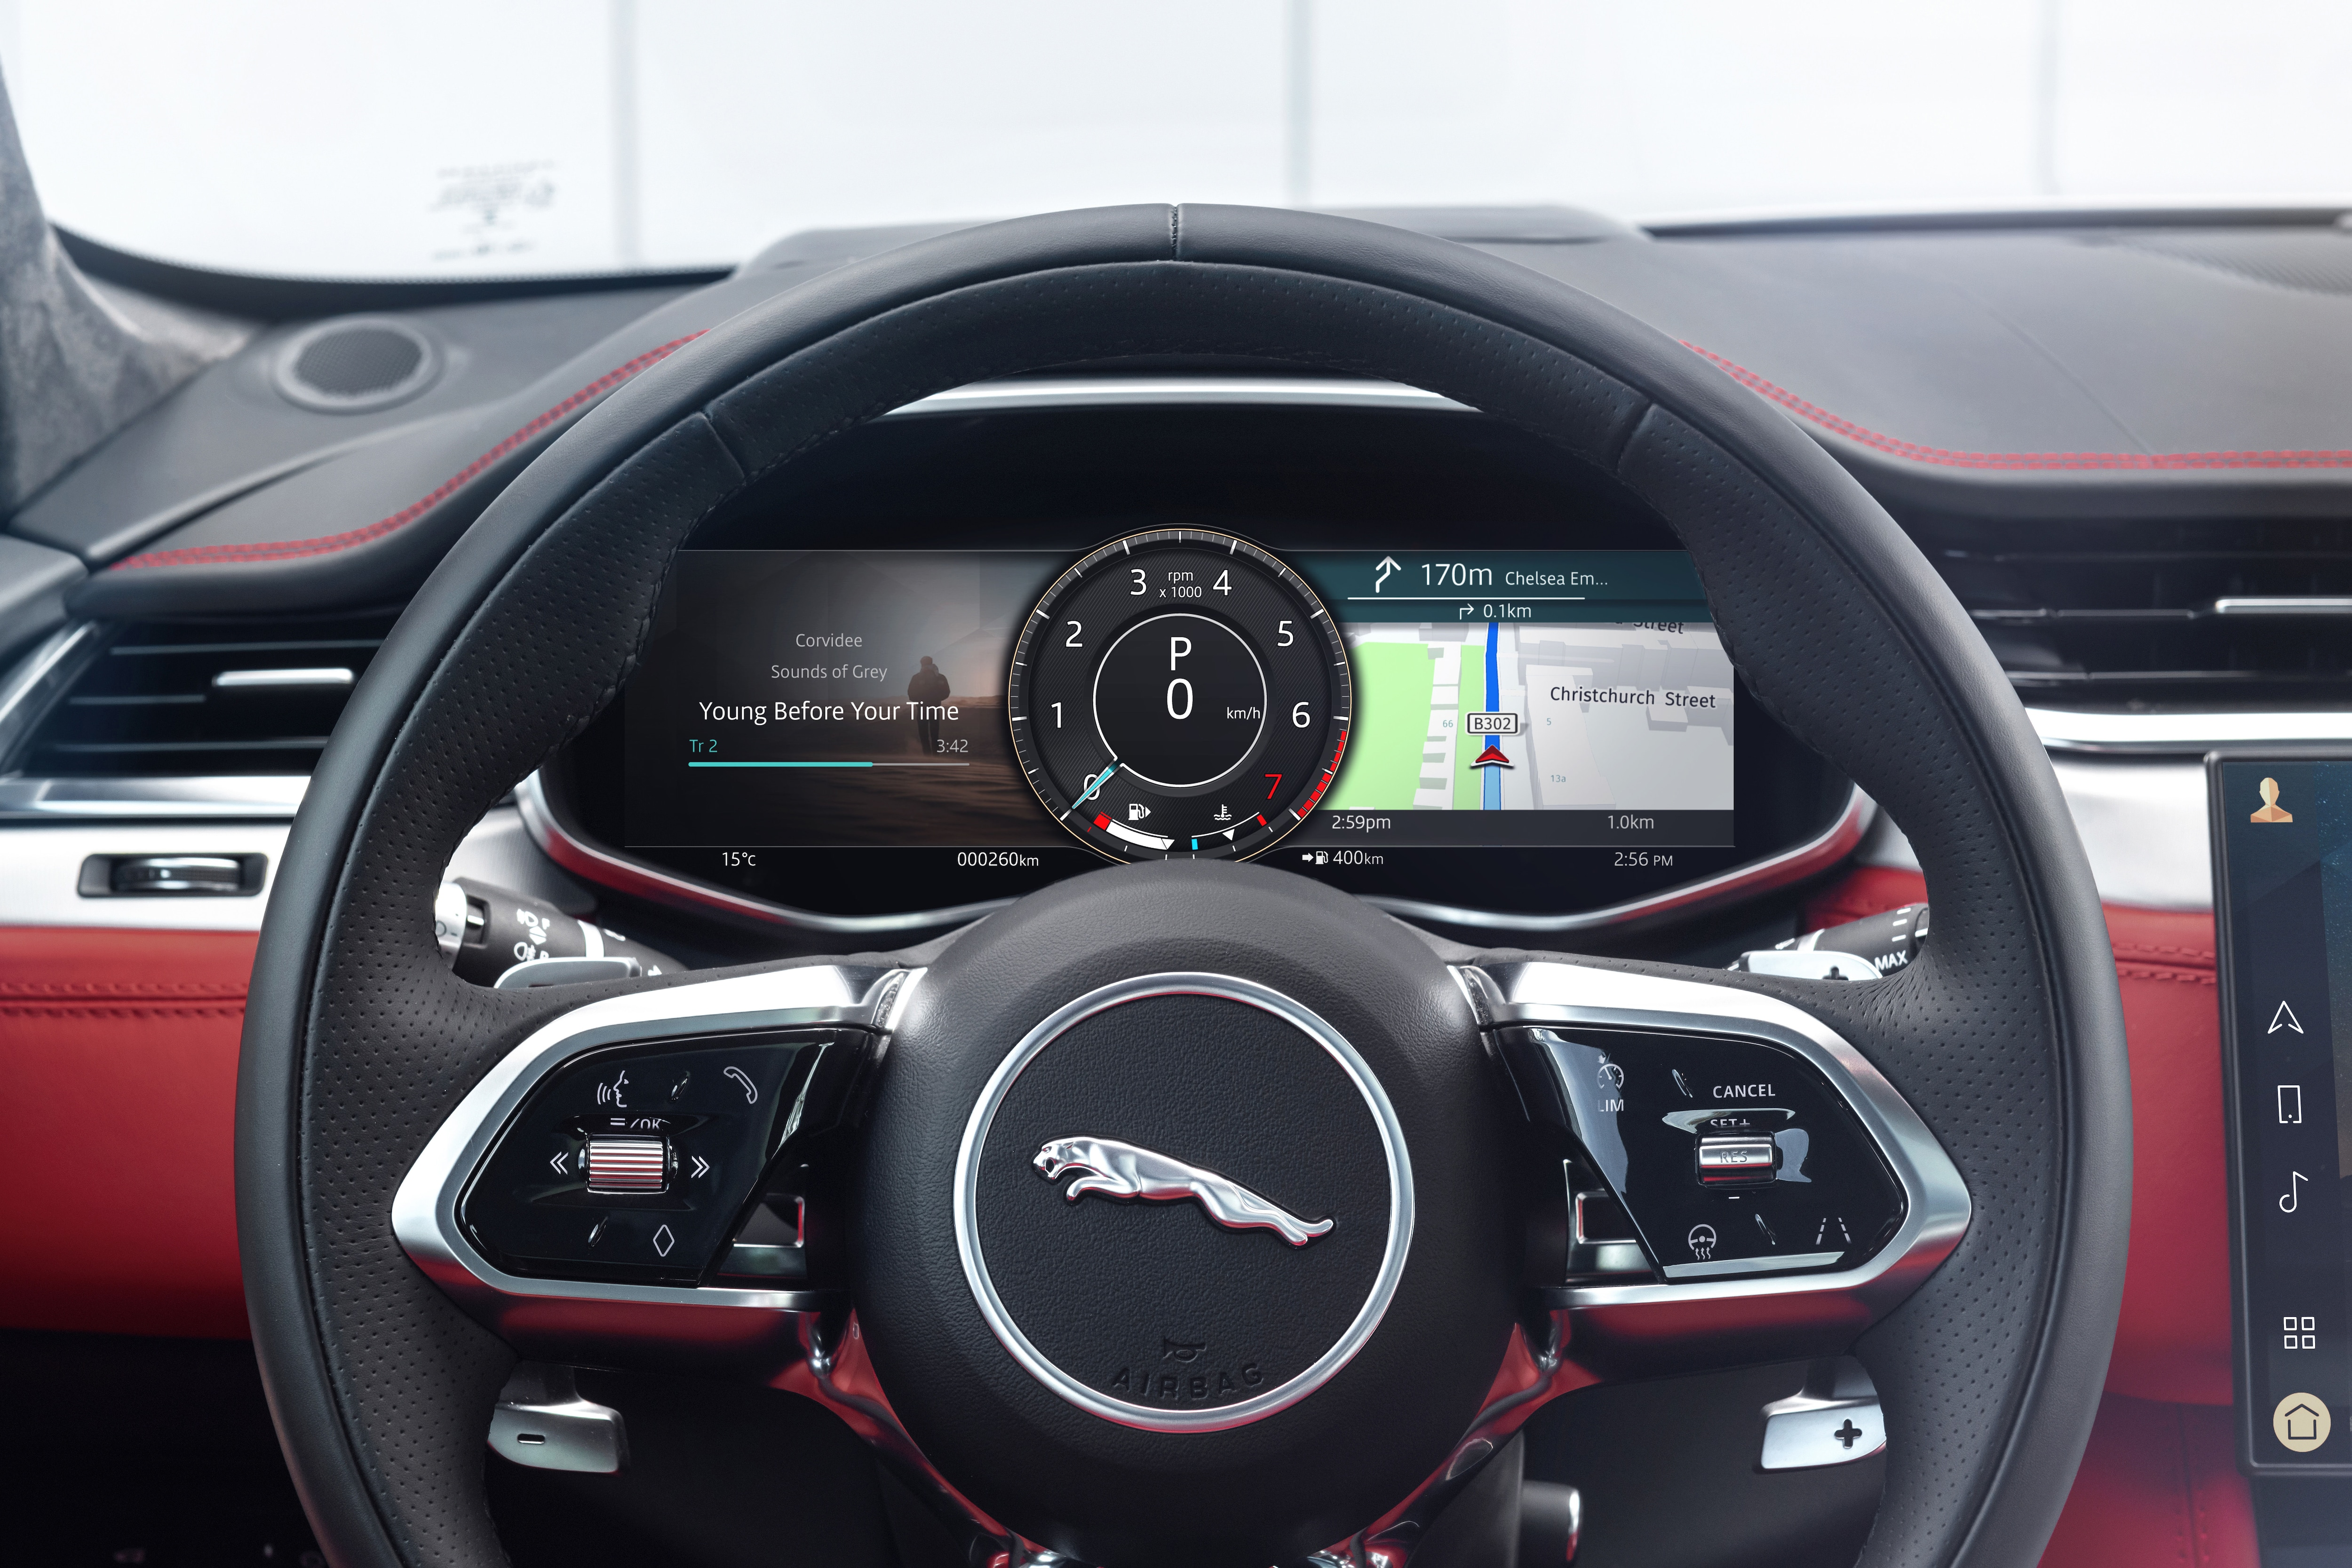 The new F-Pace borrows the steering from the I-Pace, including touch-sensitive buttons and a simple three-spoke design.